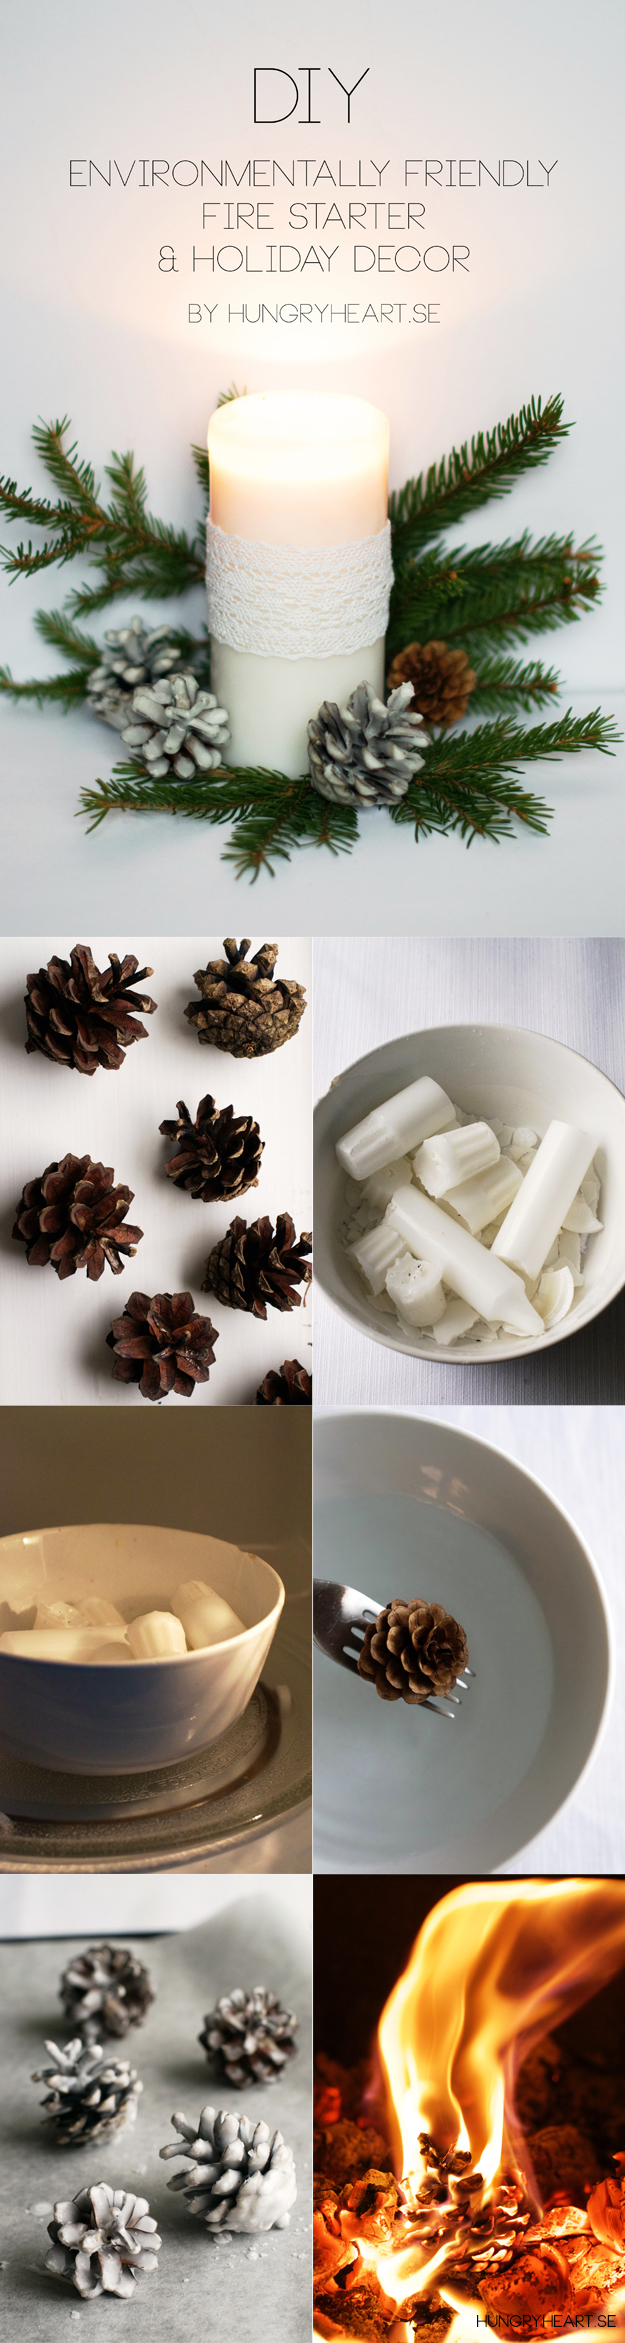 DIY Pine Cone Fire Starters Tutorial | Hungry Heart